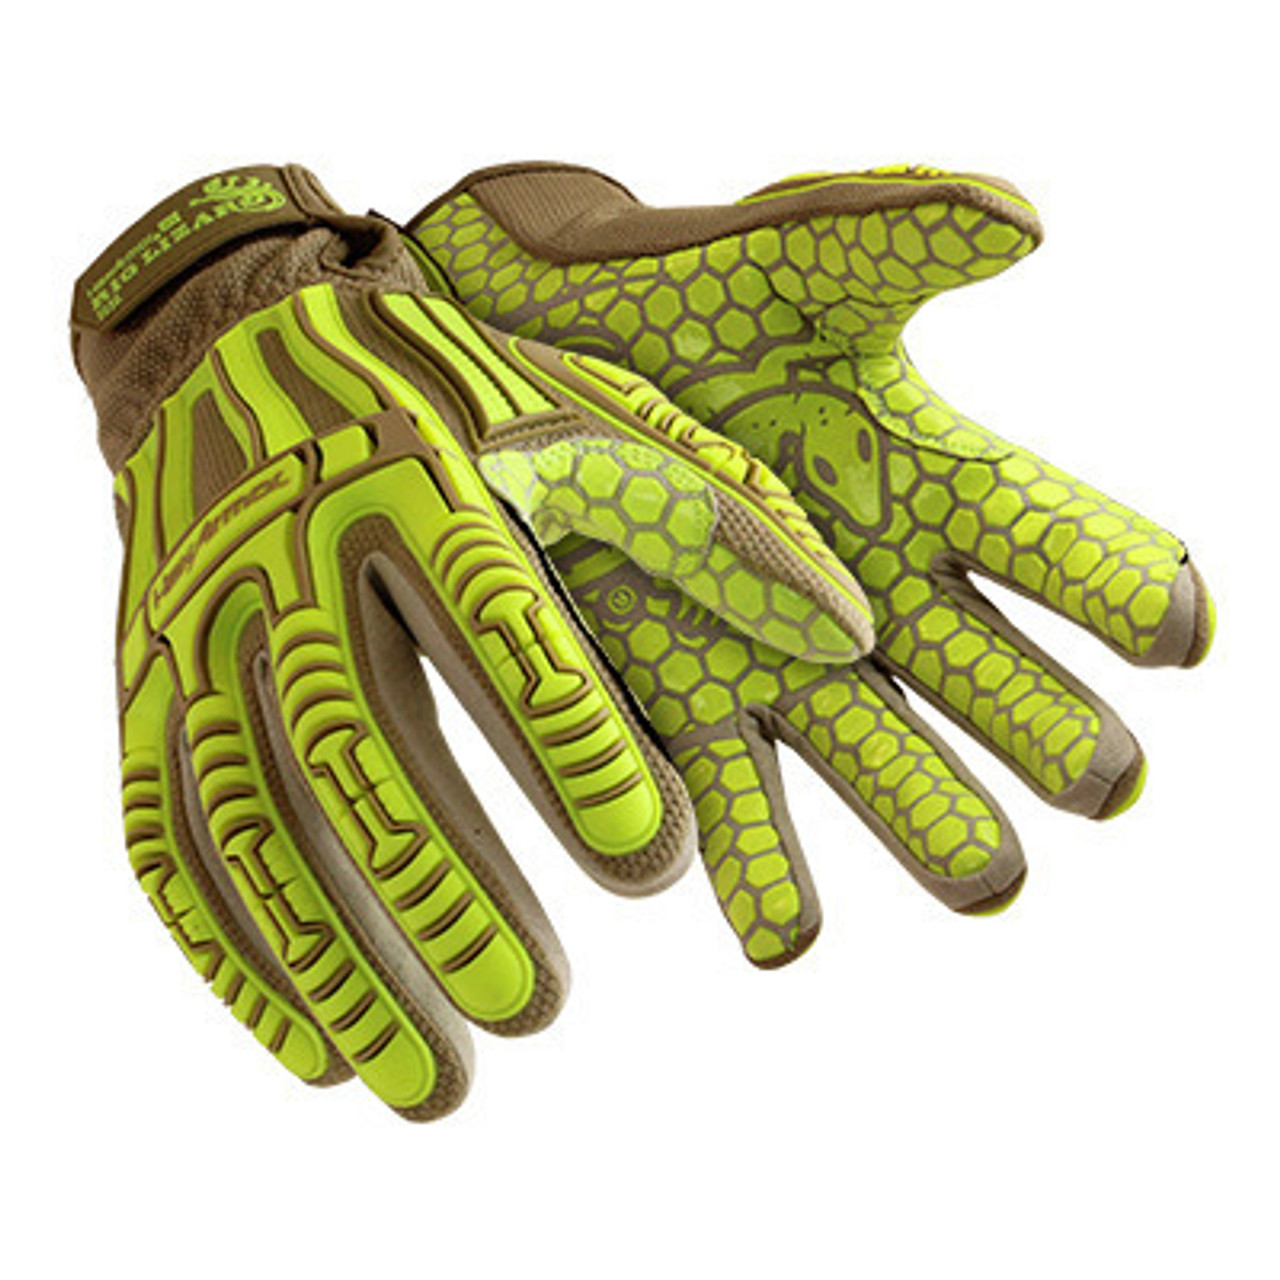 HexArmor Rig Lizard Thin Lizzie 2090X Impact Work Gloves with Nitrile Coated Palm